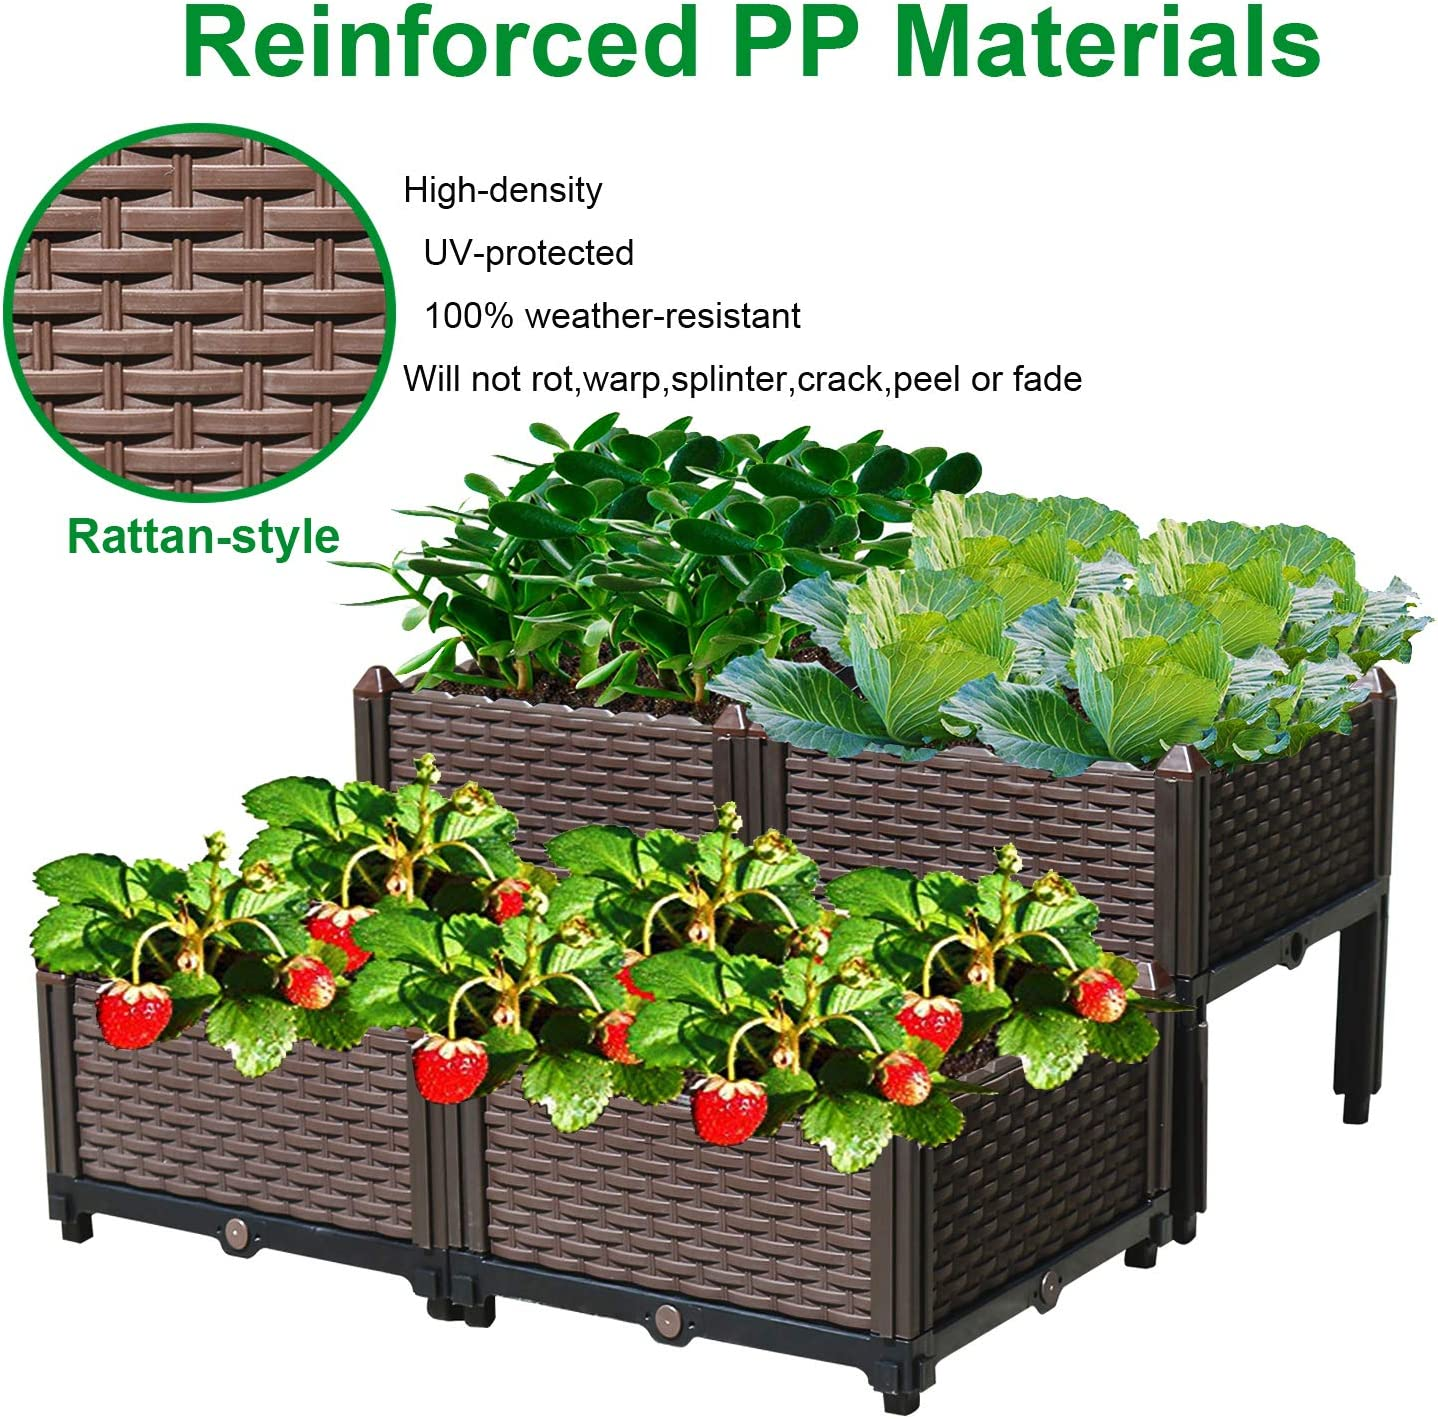 Reliancer Set of 4 Raised Garden Beds w Brackets Elevated Garden Bed Kit Patio Flower Plant Planter Box Vegetables Planting Container Fence Indoor Outdoor for Porches Decks Balconies Yard Gardening